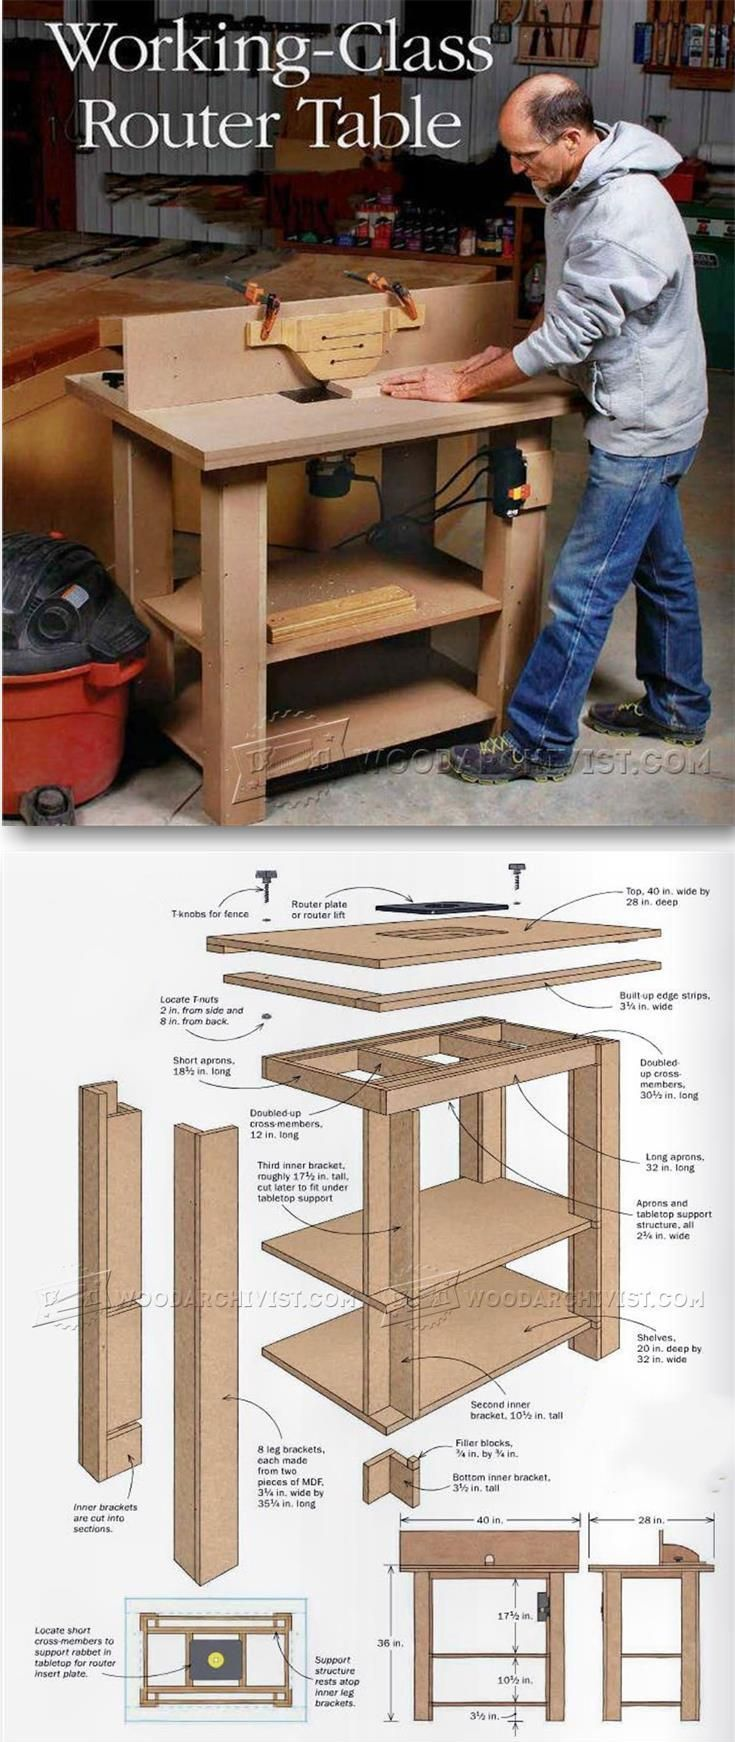 Router table plans router tips jigs and fixtures router table plans router tips jigs and fixtures woodarchivist greentooth Image collections